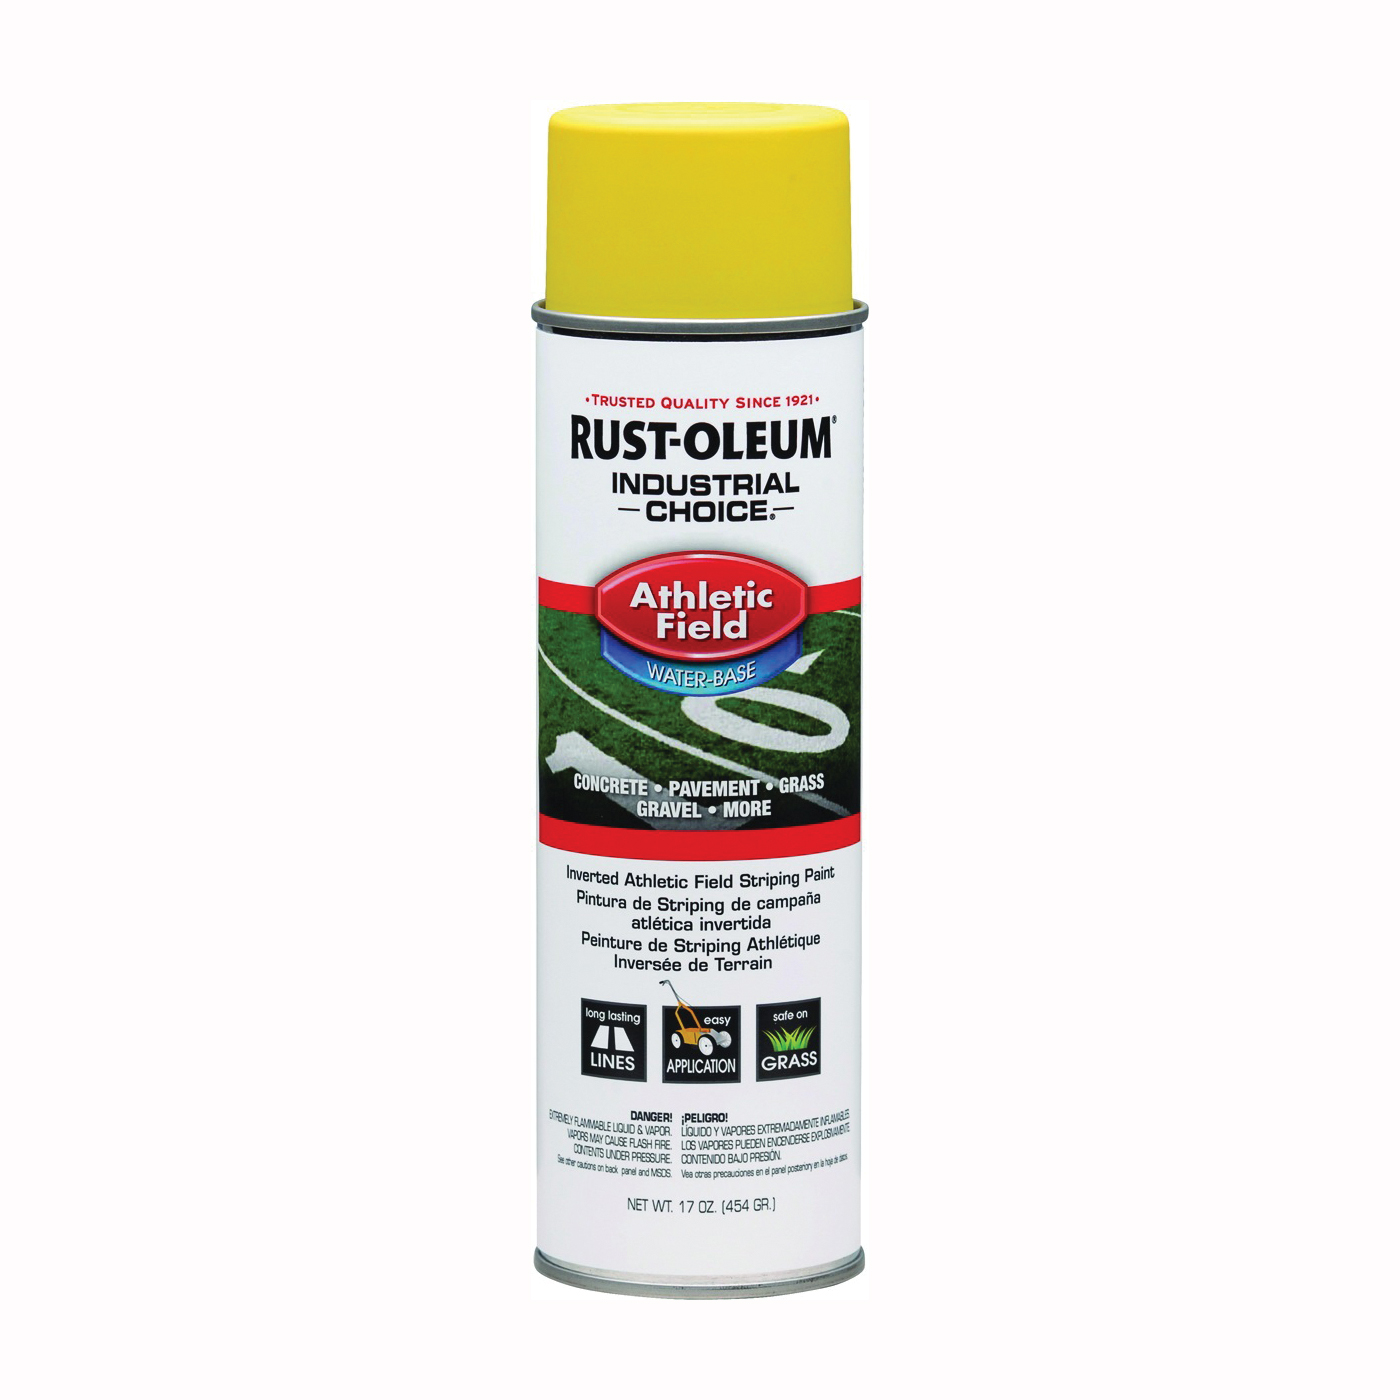 Picture of RUST-OLEUM INDUSTRIAL CHOICE 206045 Athletic Field Striping Paint, Yellow, 17 oz, Aerosol Can